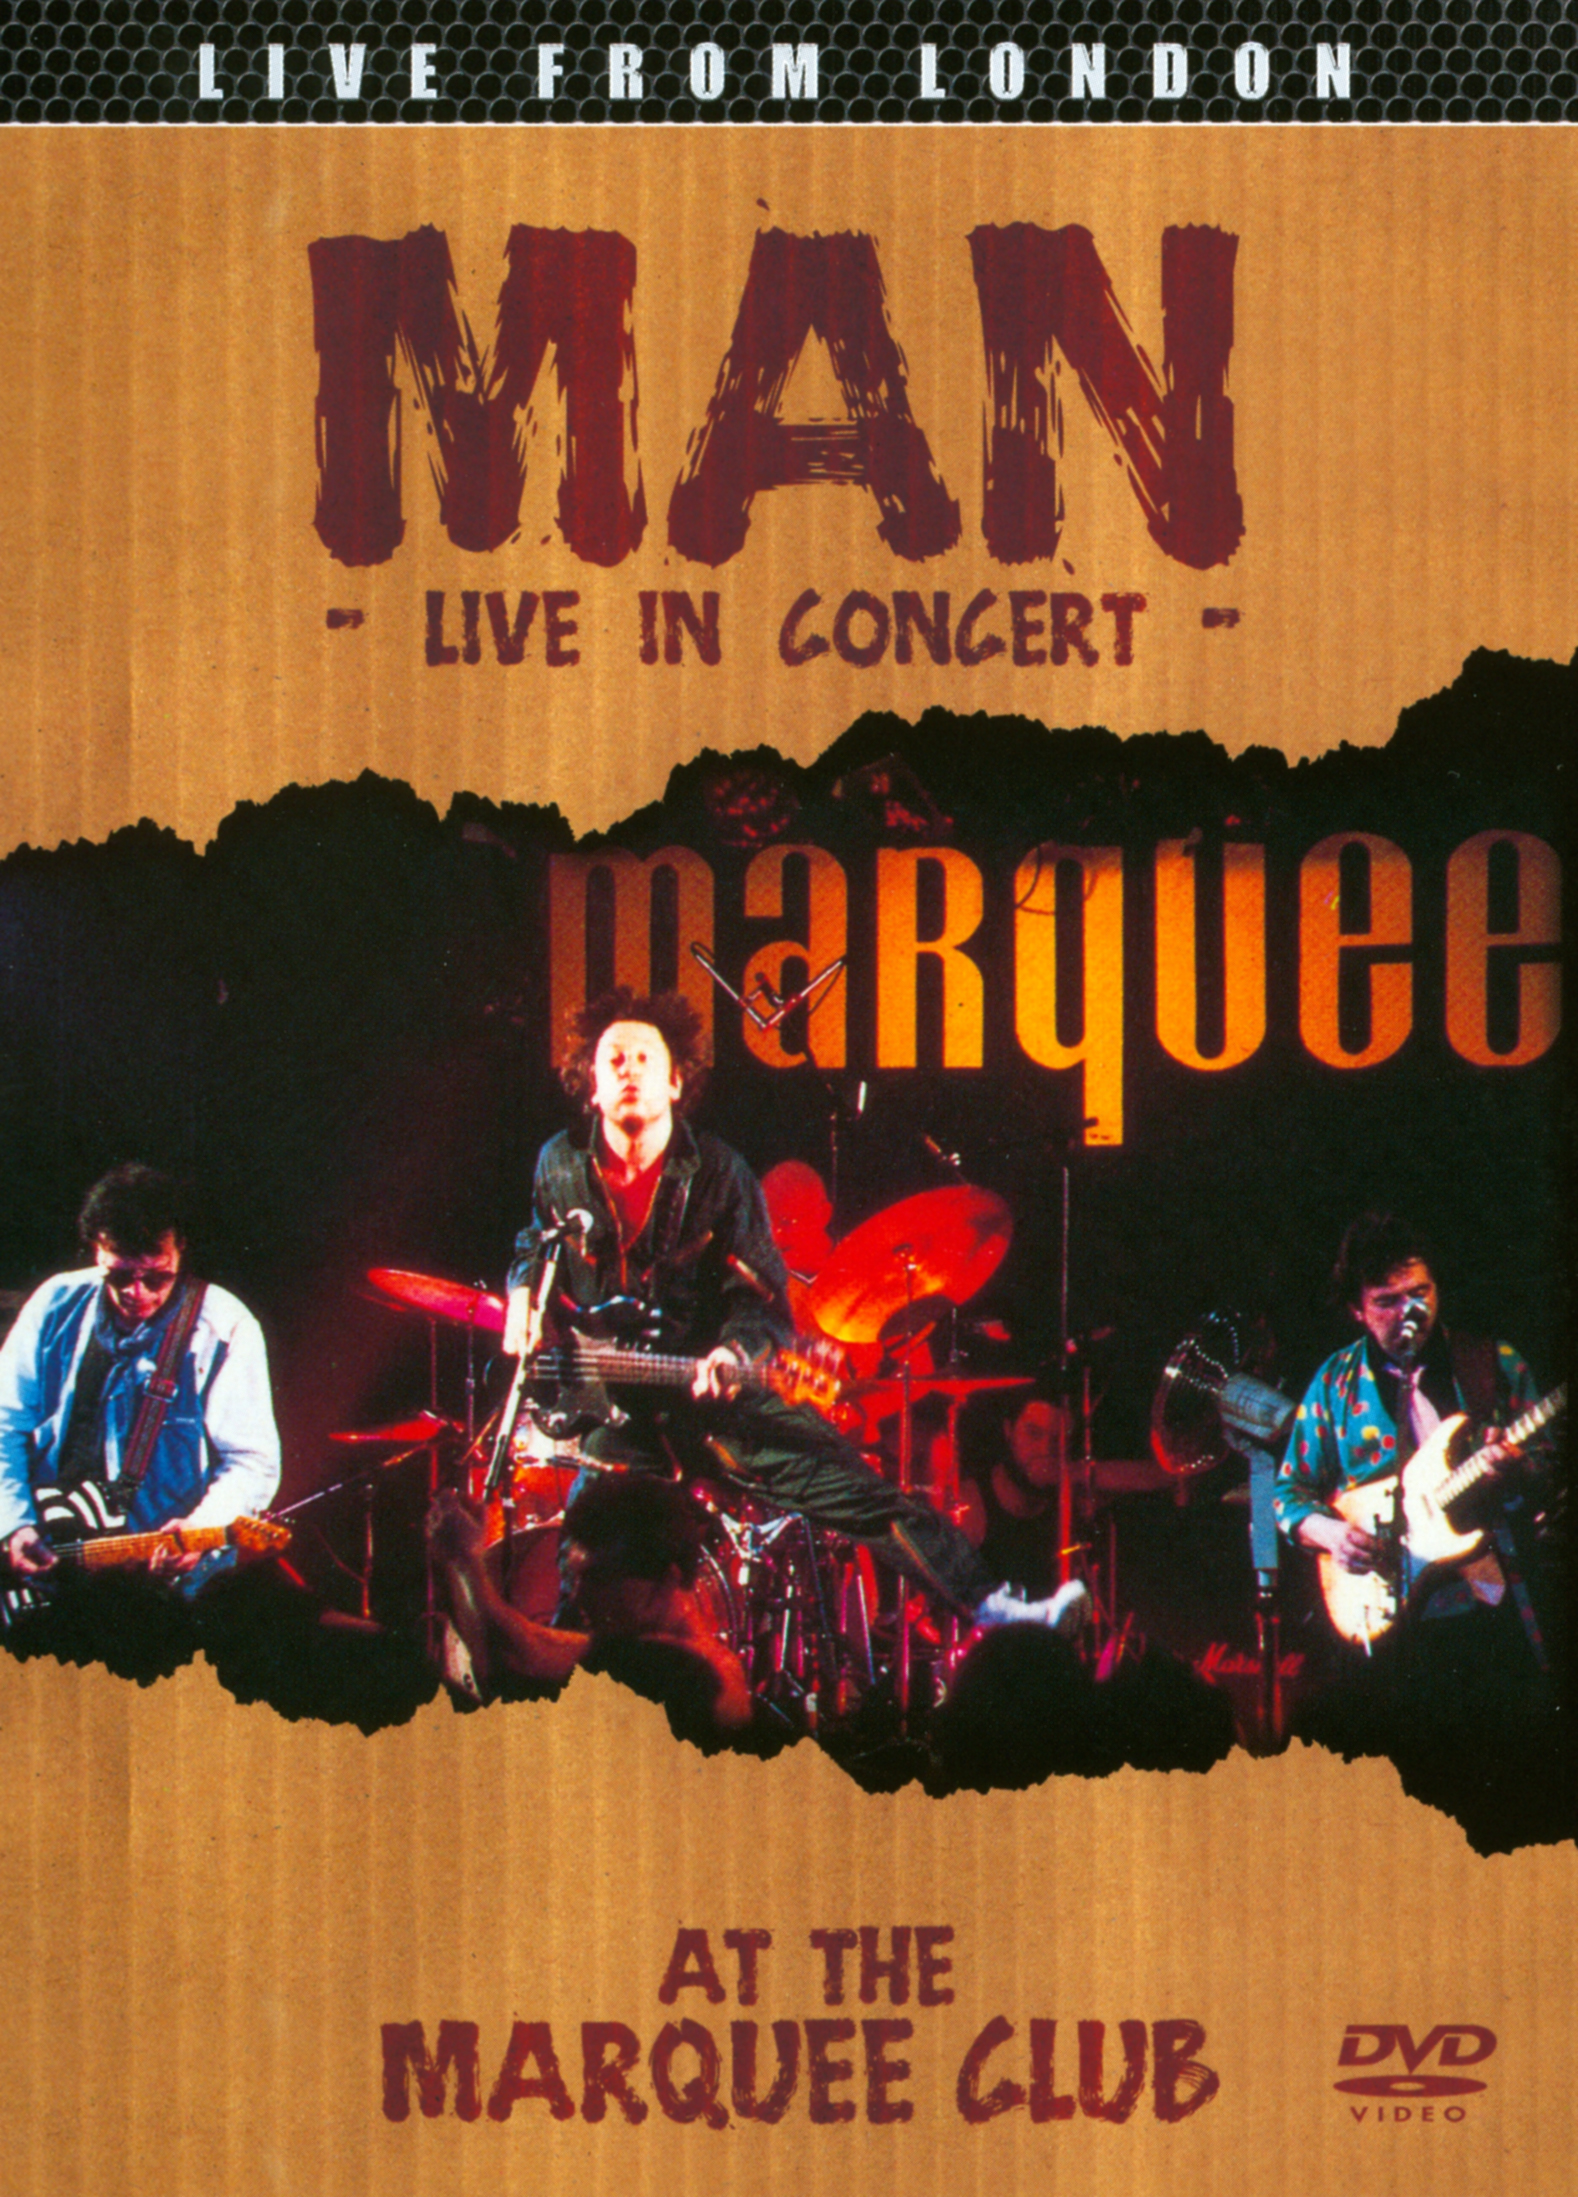 Man: Live from London - At the Marquee Club